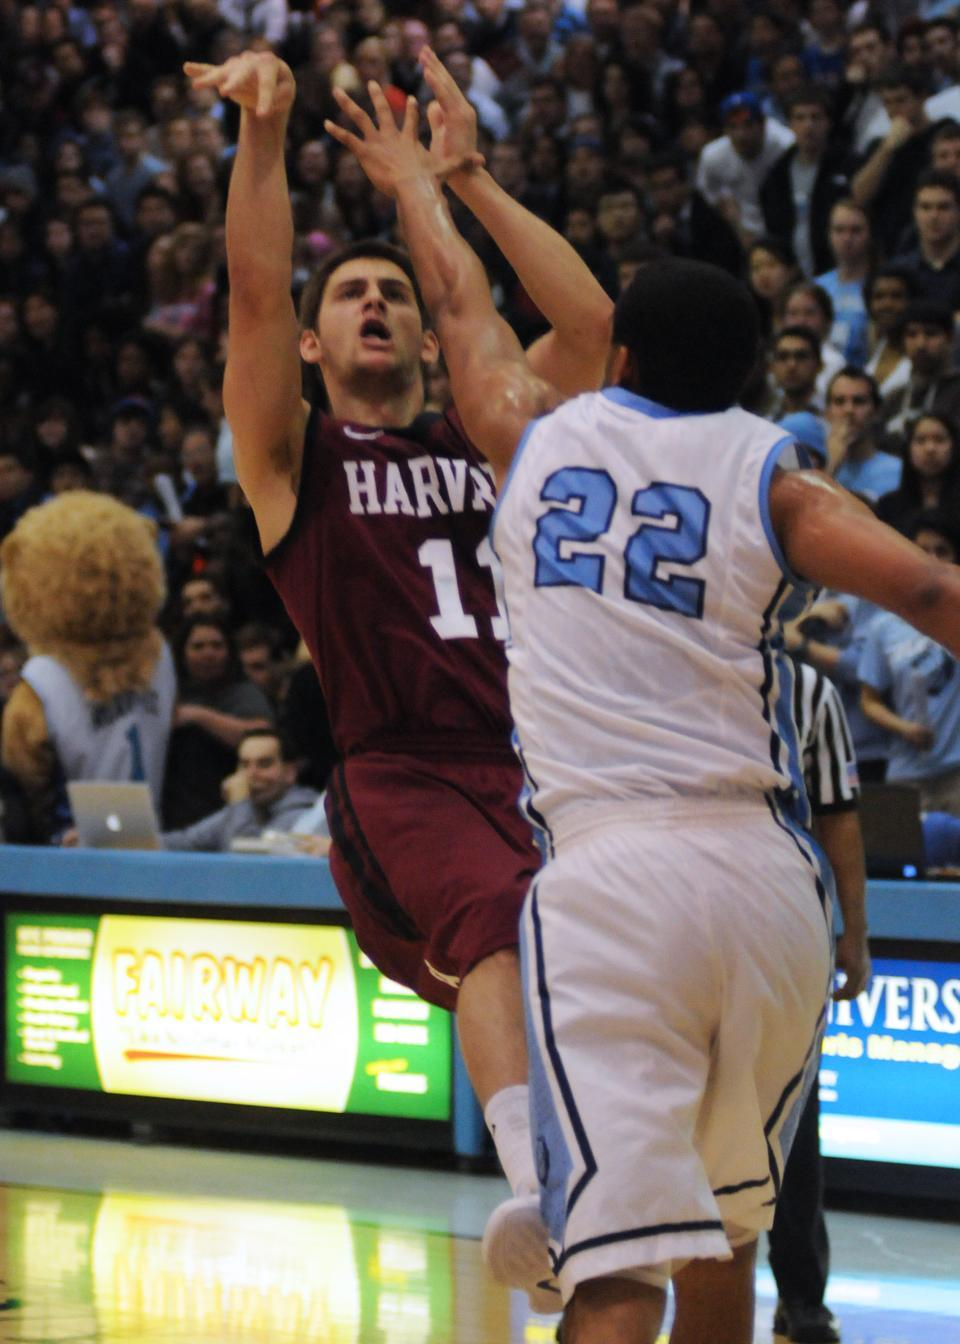 Co-captain Oliver McNally attempts a shot over Columbia's Meiko Lyles during the Crimson's 77-70 overtime win against the Lions on Friday at Levien Gymnasium. McNally finished with 12 points and four assists in 38 minutes of action.